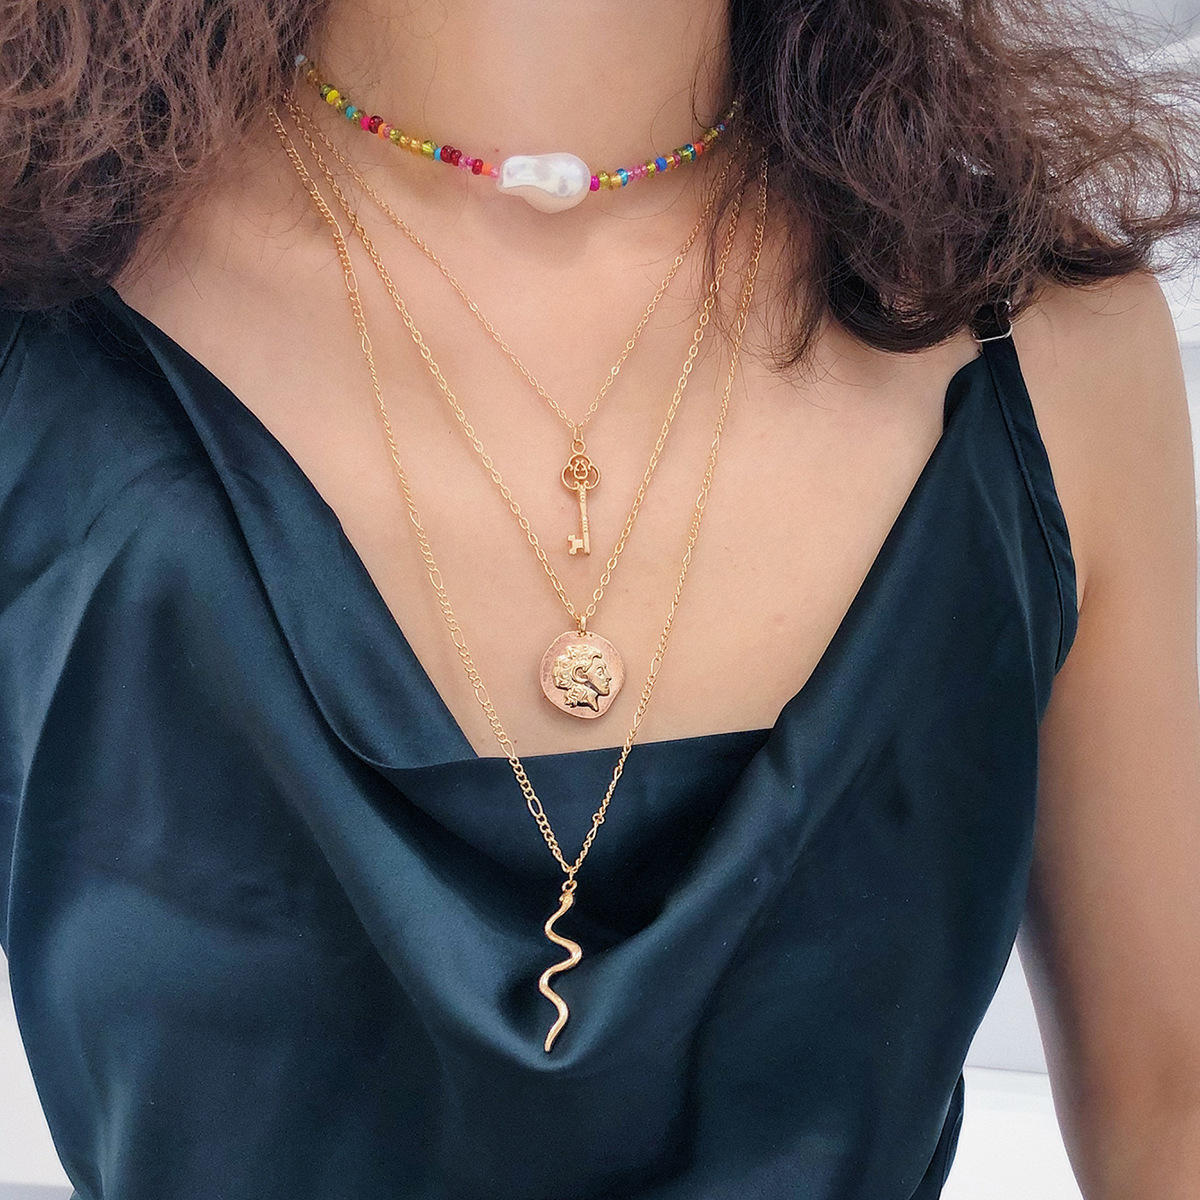 Trendy Geometric Key Snake Pendant Chain Necklace Multi-layer Color Rice Beaded Pearl Necklace